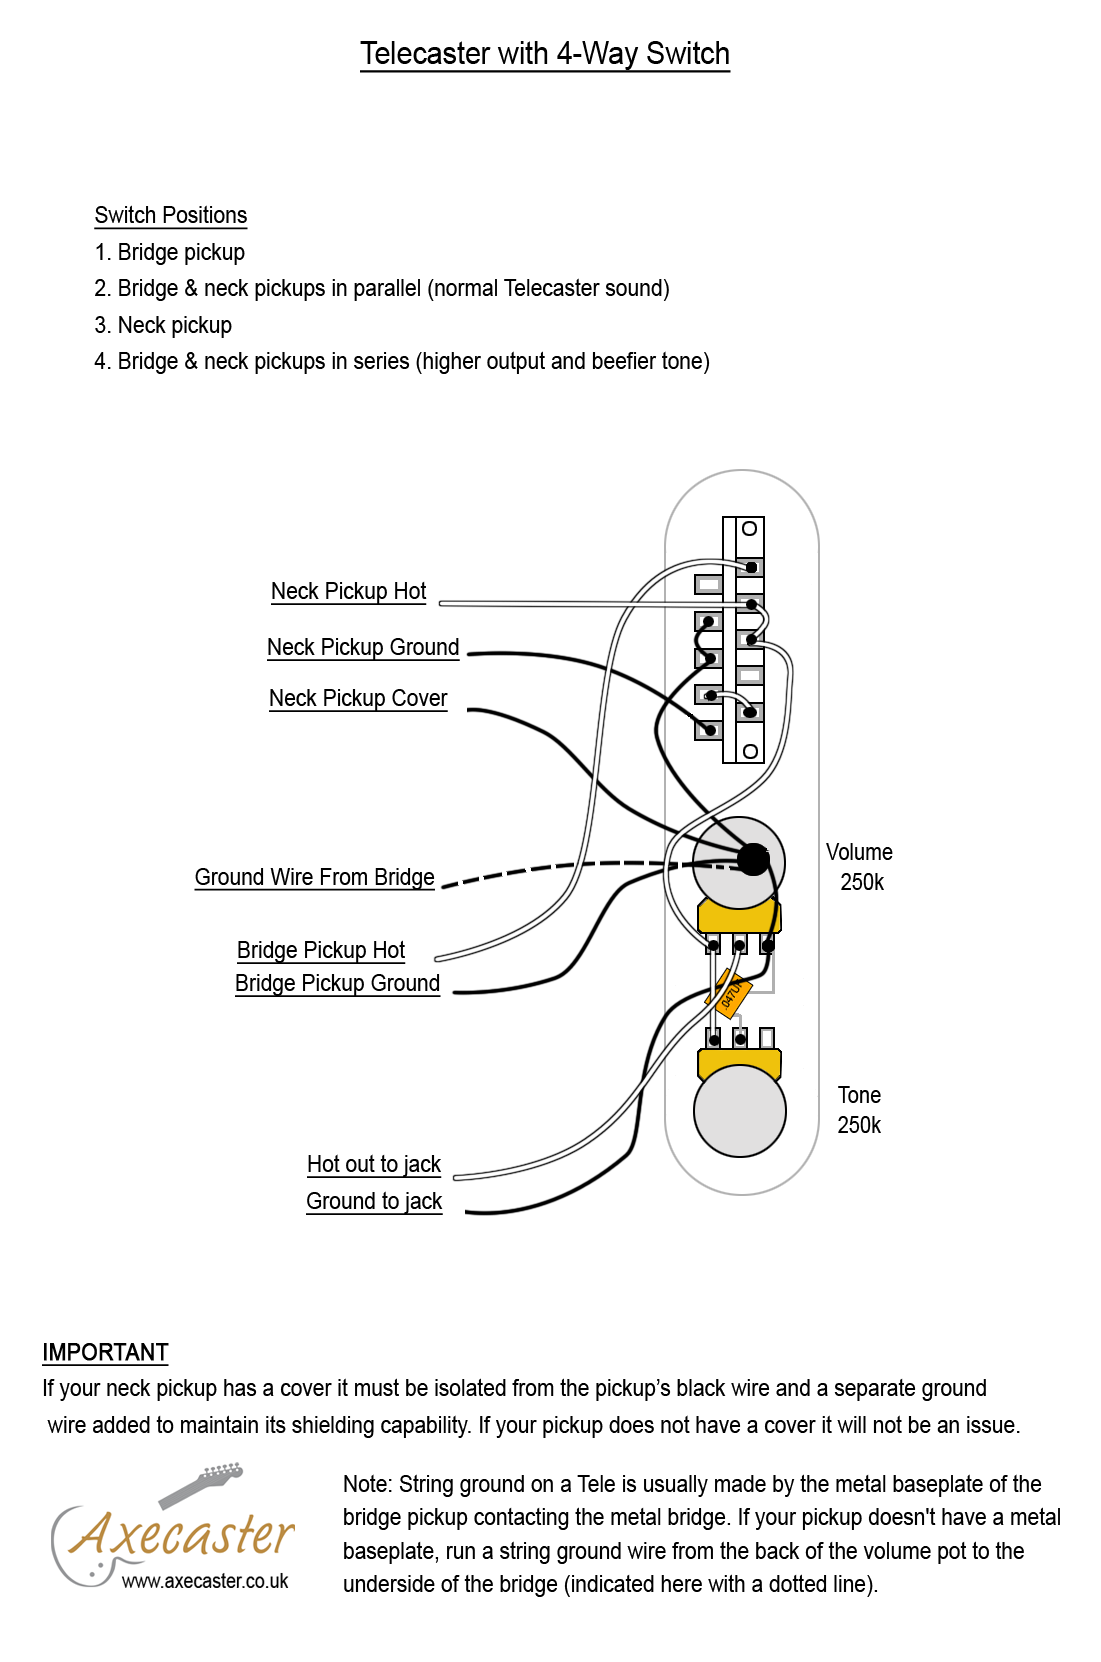 Fender Telecaster Grease Bucket Wiring Diagram Just Another With Strat Switch Diagrams Axecaster Build It How You Want Rh Co Uk Humbucker 4 Way